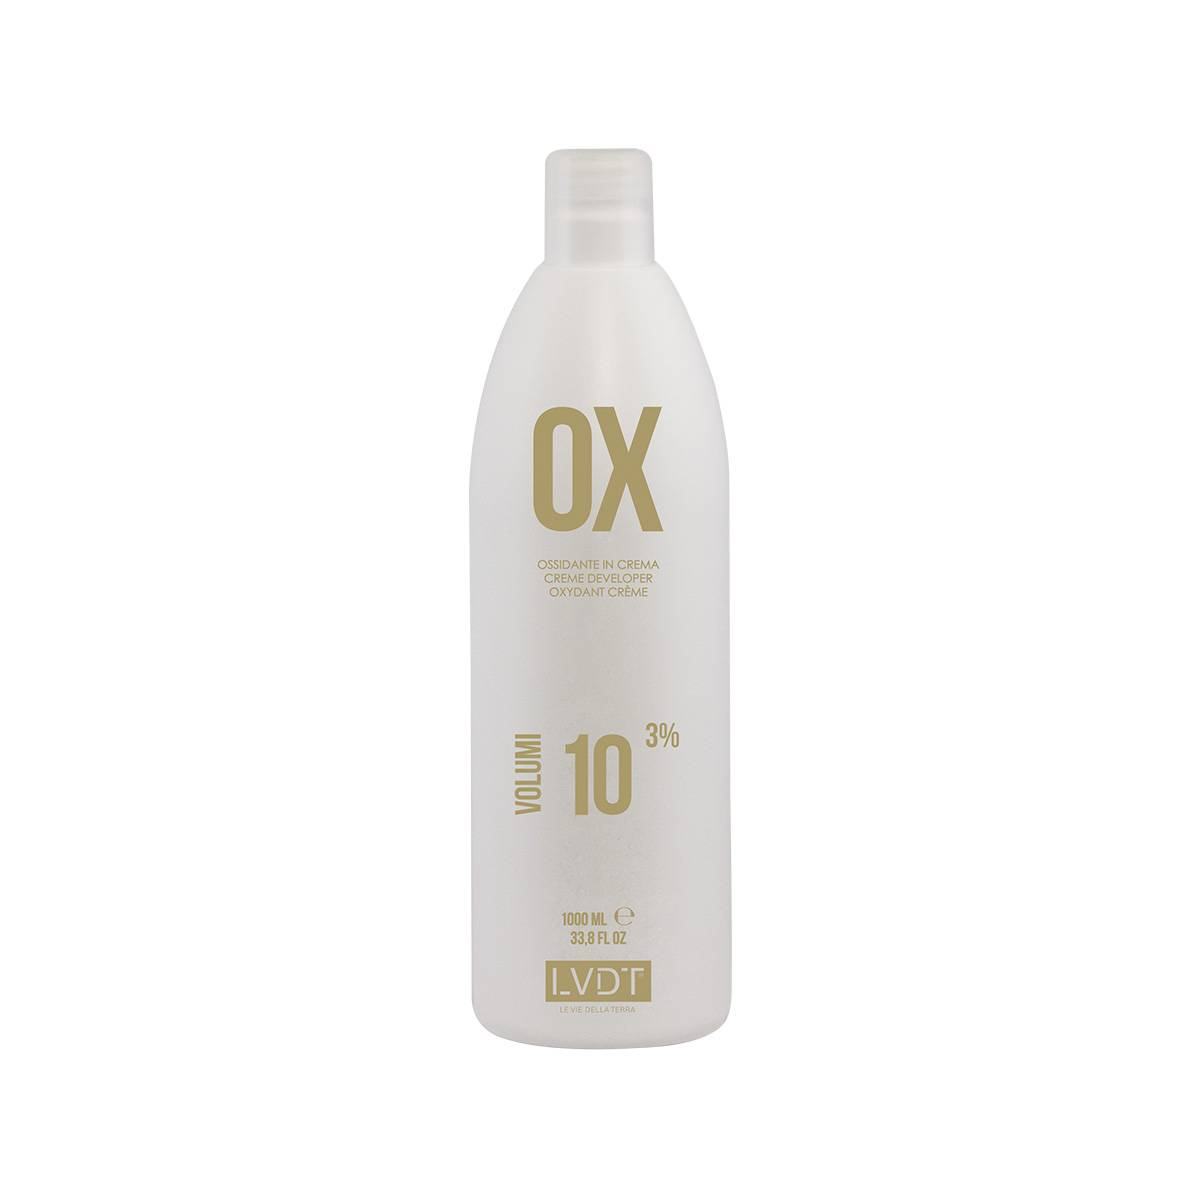 Lvdt Ossidante In Crema 10 Vol 1000 Ml